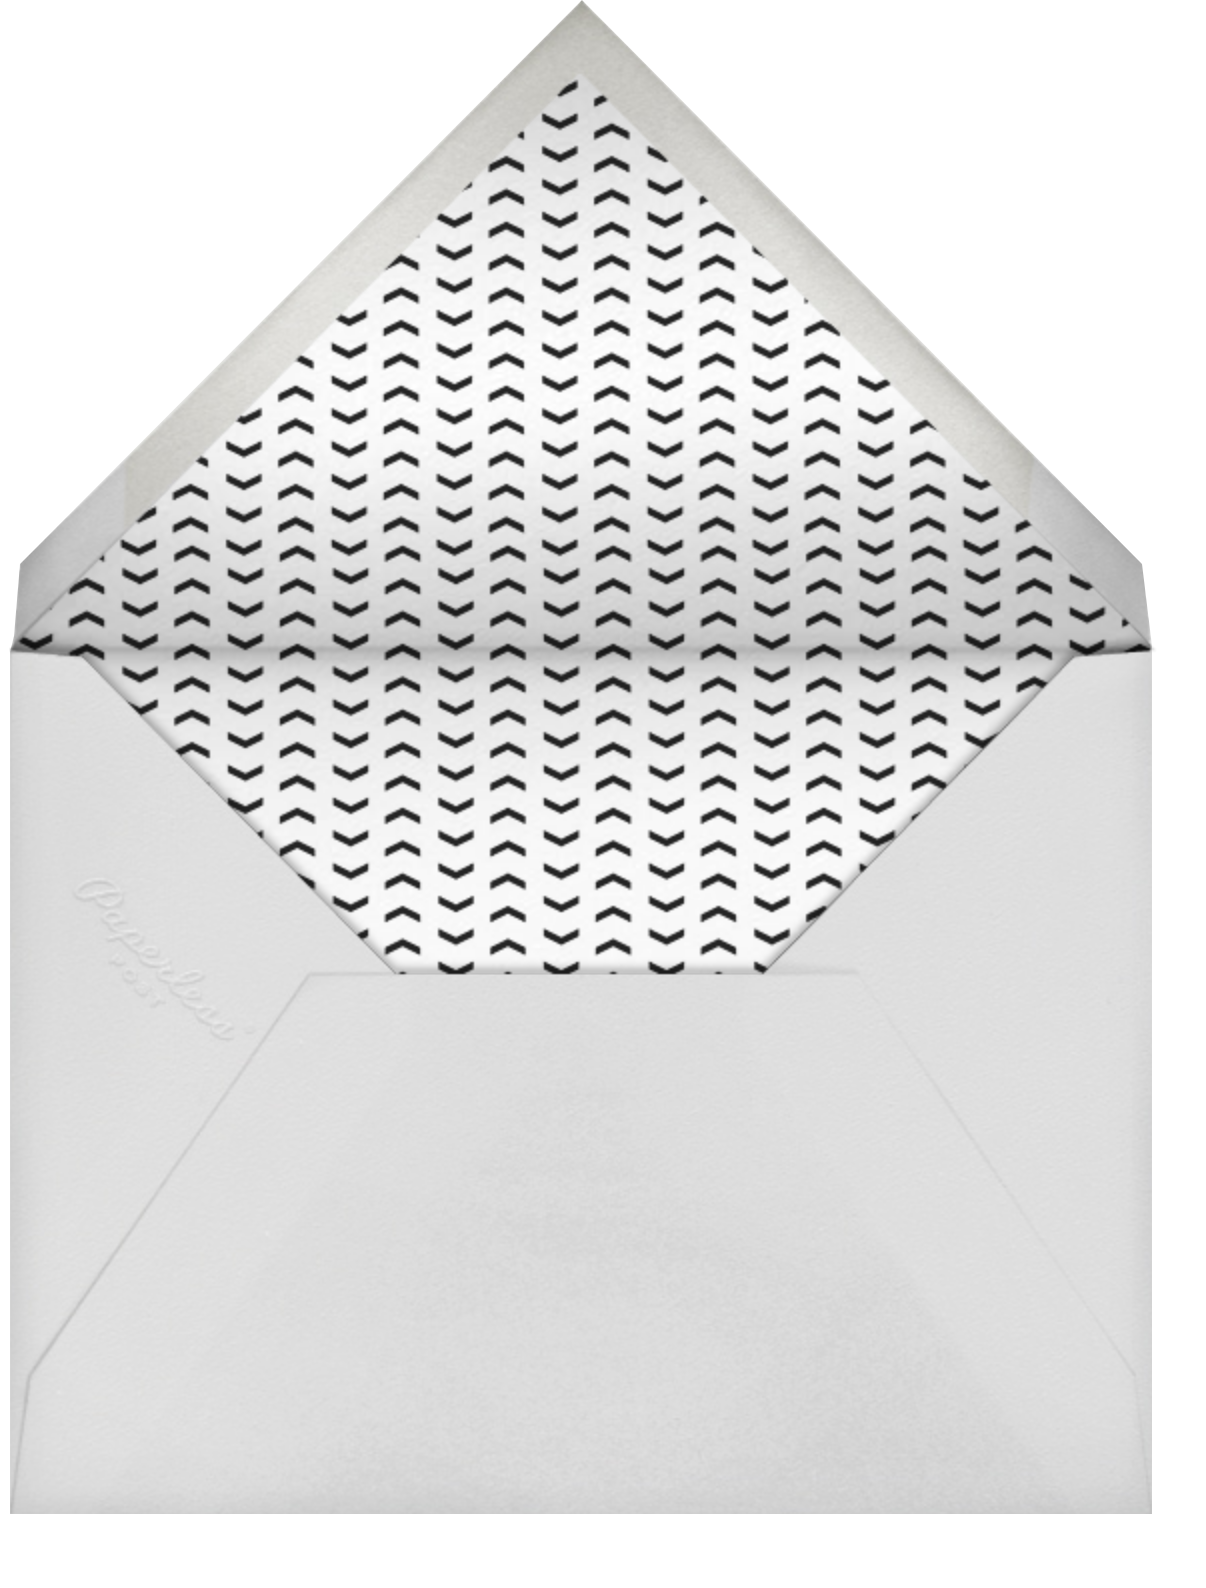 Pennant Party (Pitch) - Photo - Paperless Post - Graduation party - envelope back